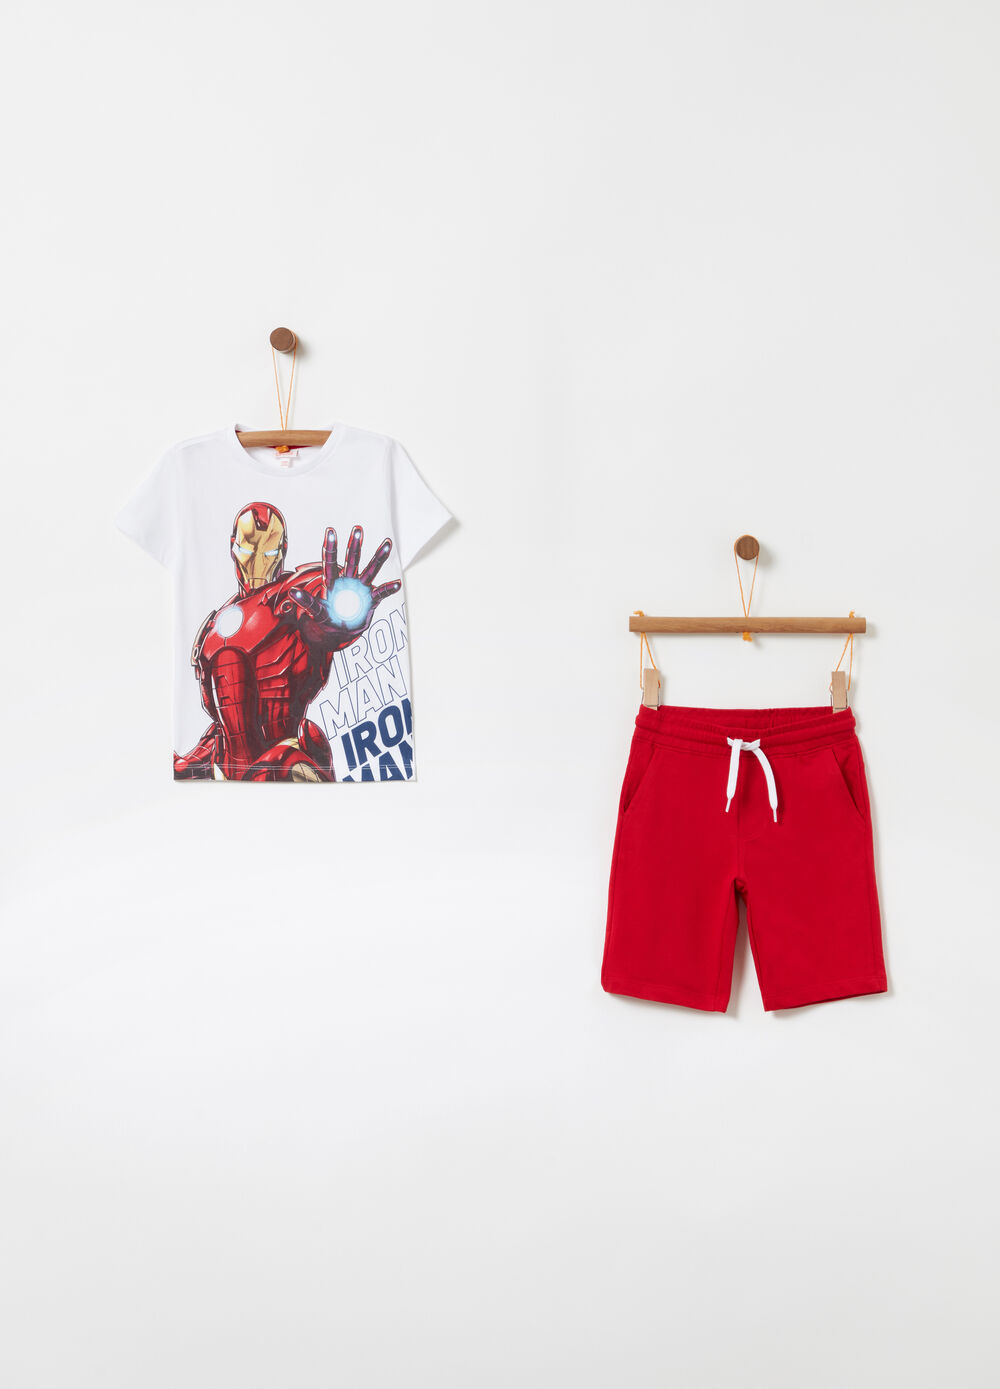 Marvel Avengers jogging set with T-shirt and shorts